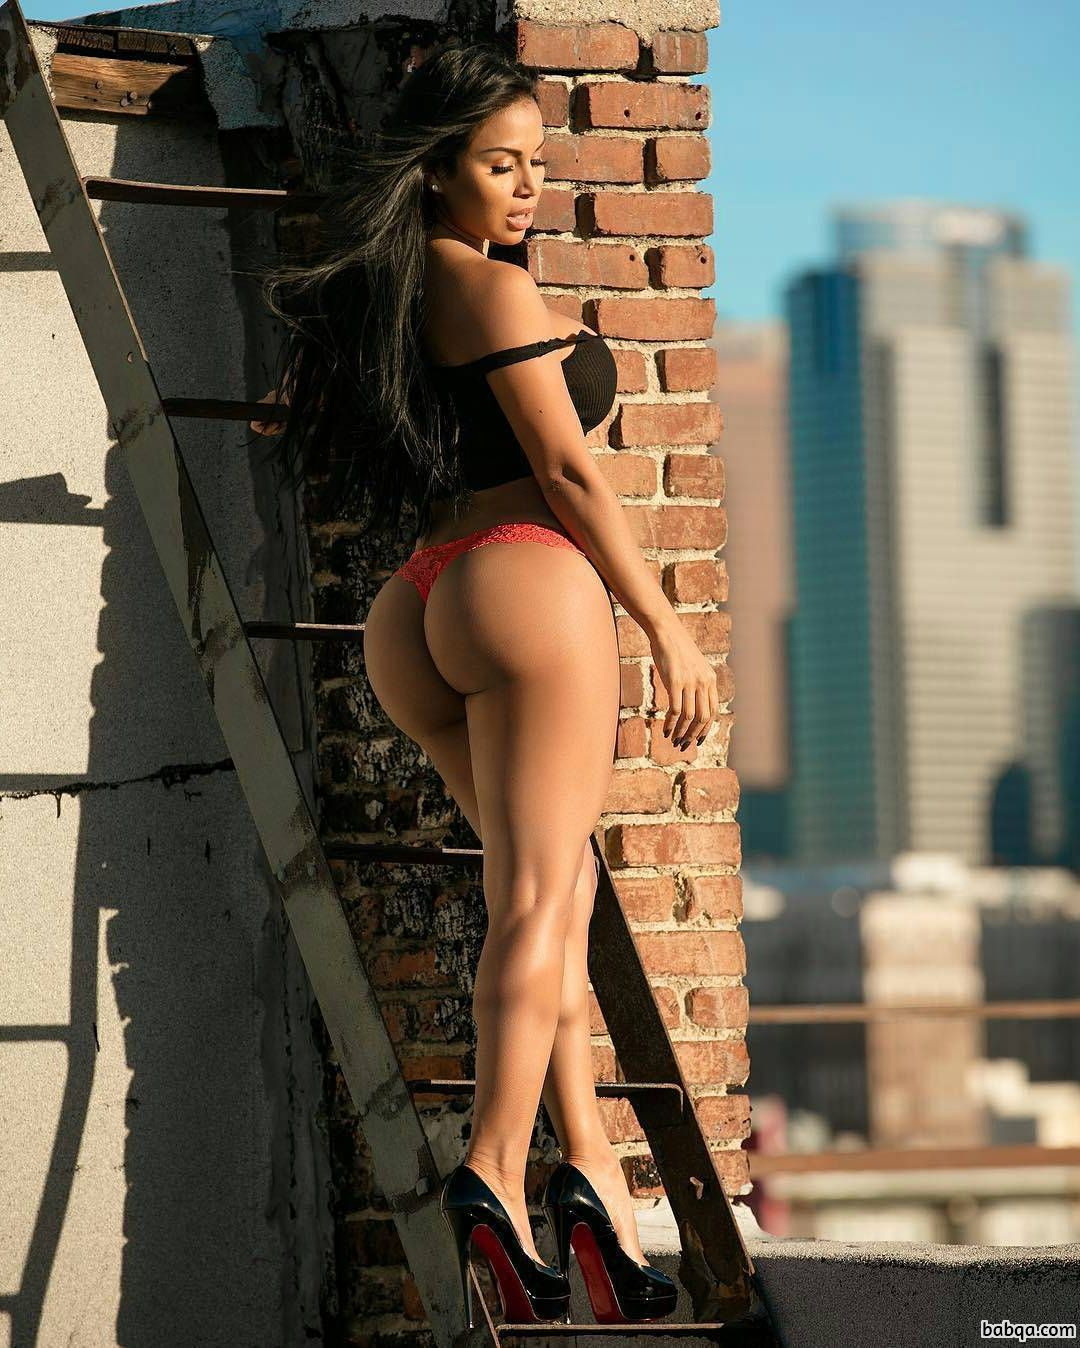 ethiopian sexy girl repost from hotfitdivas – thick booty girls